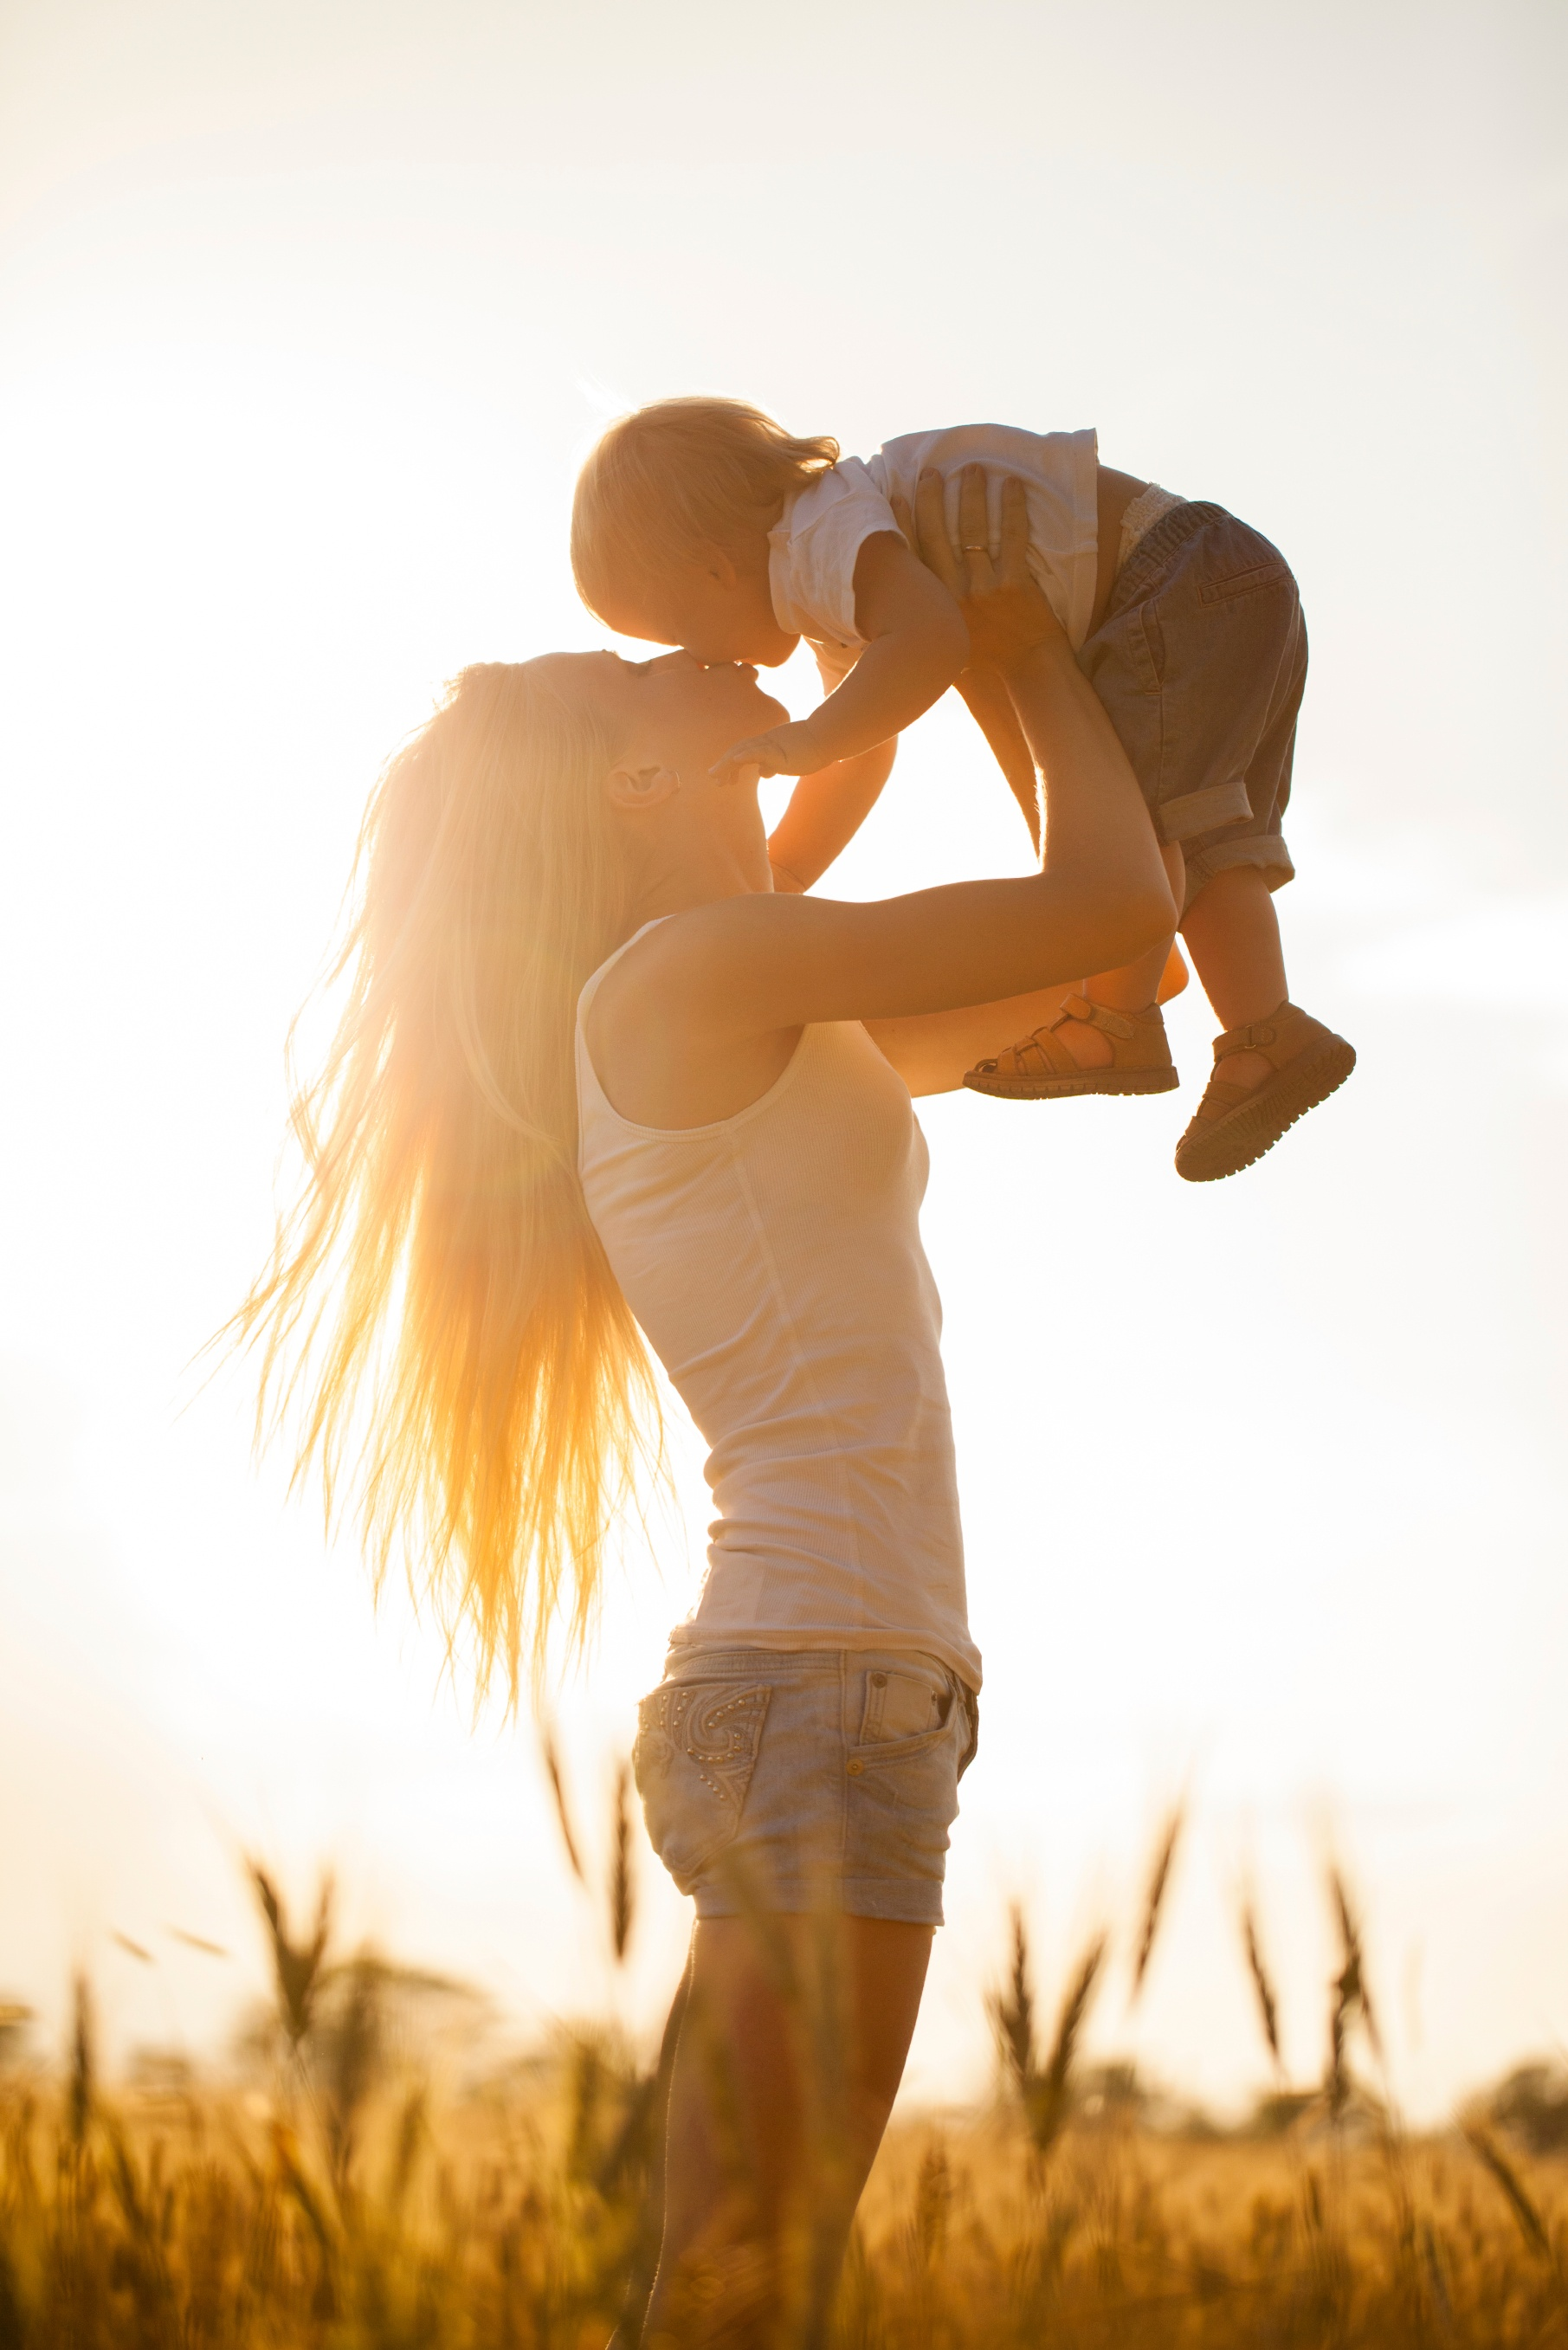 Happy mom lifting her child into the sunlit air